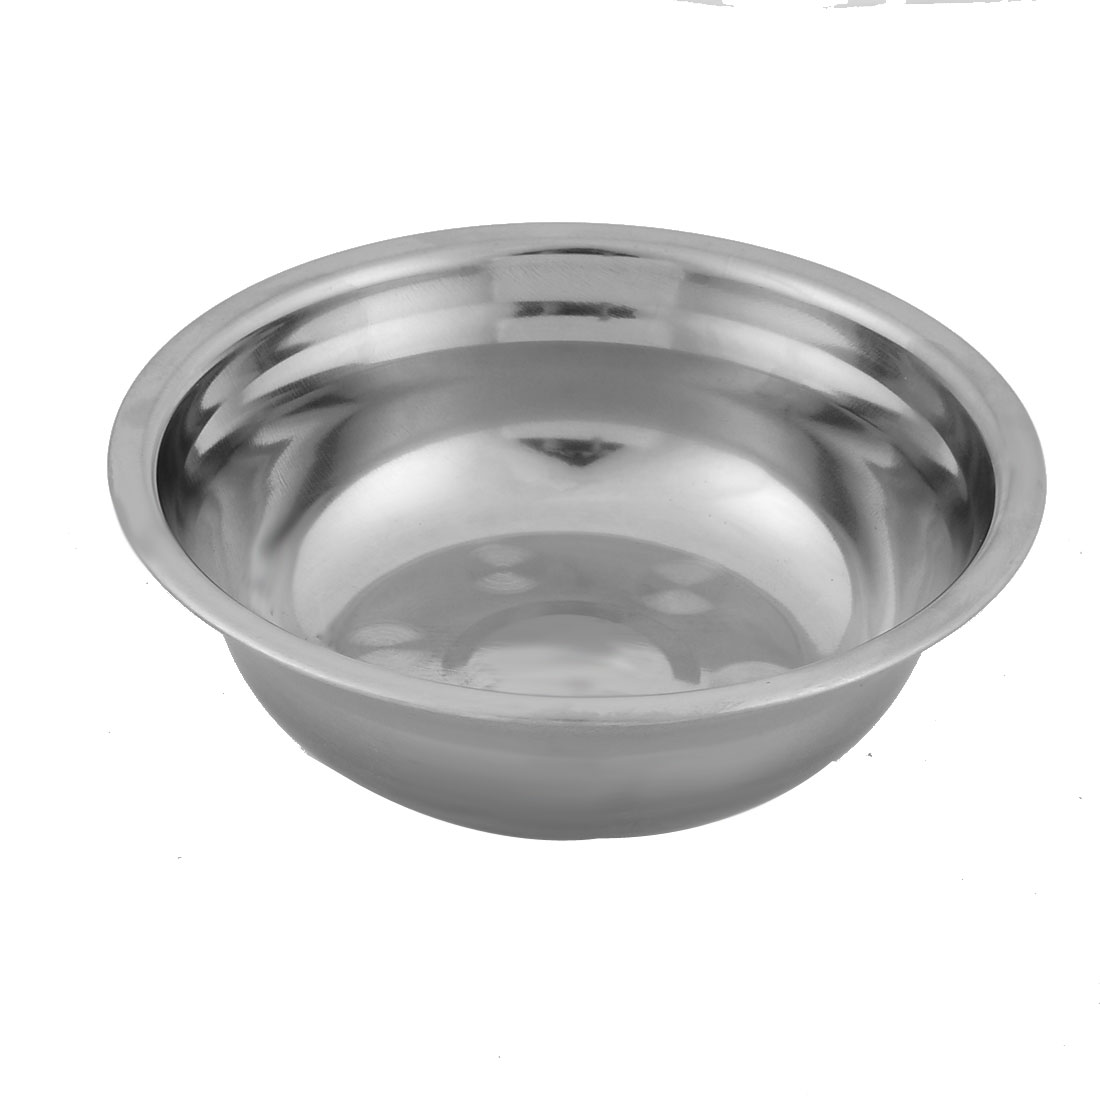 Kitchen Stainless Steel Fruit Soup Rice Dinner Bowl 13cm Diameter Silver Tone - image 2 of 2